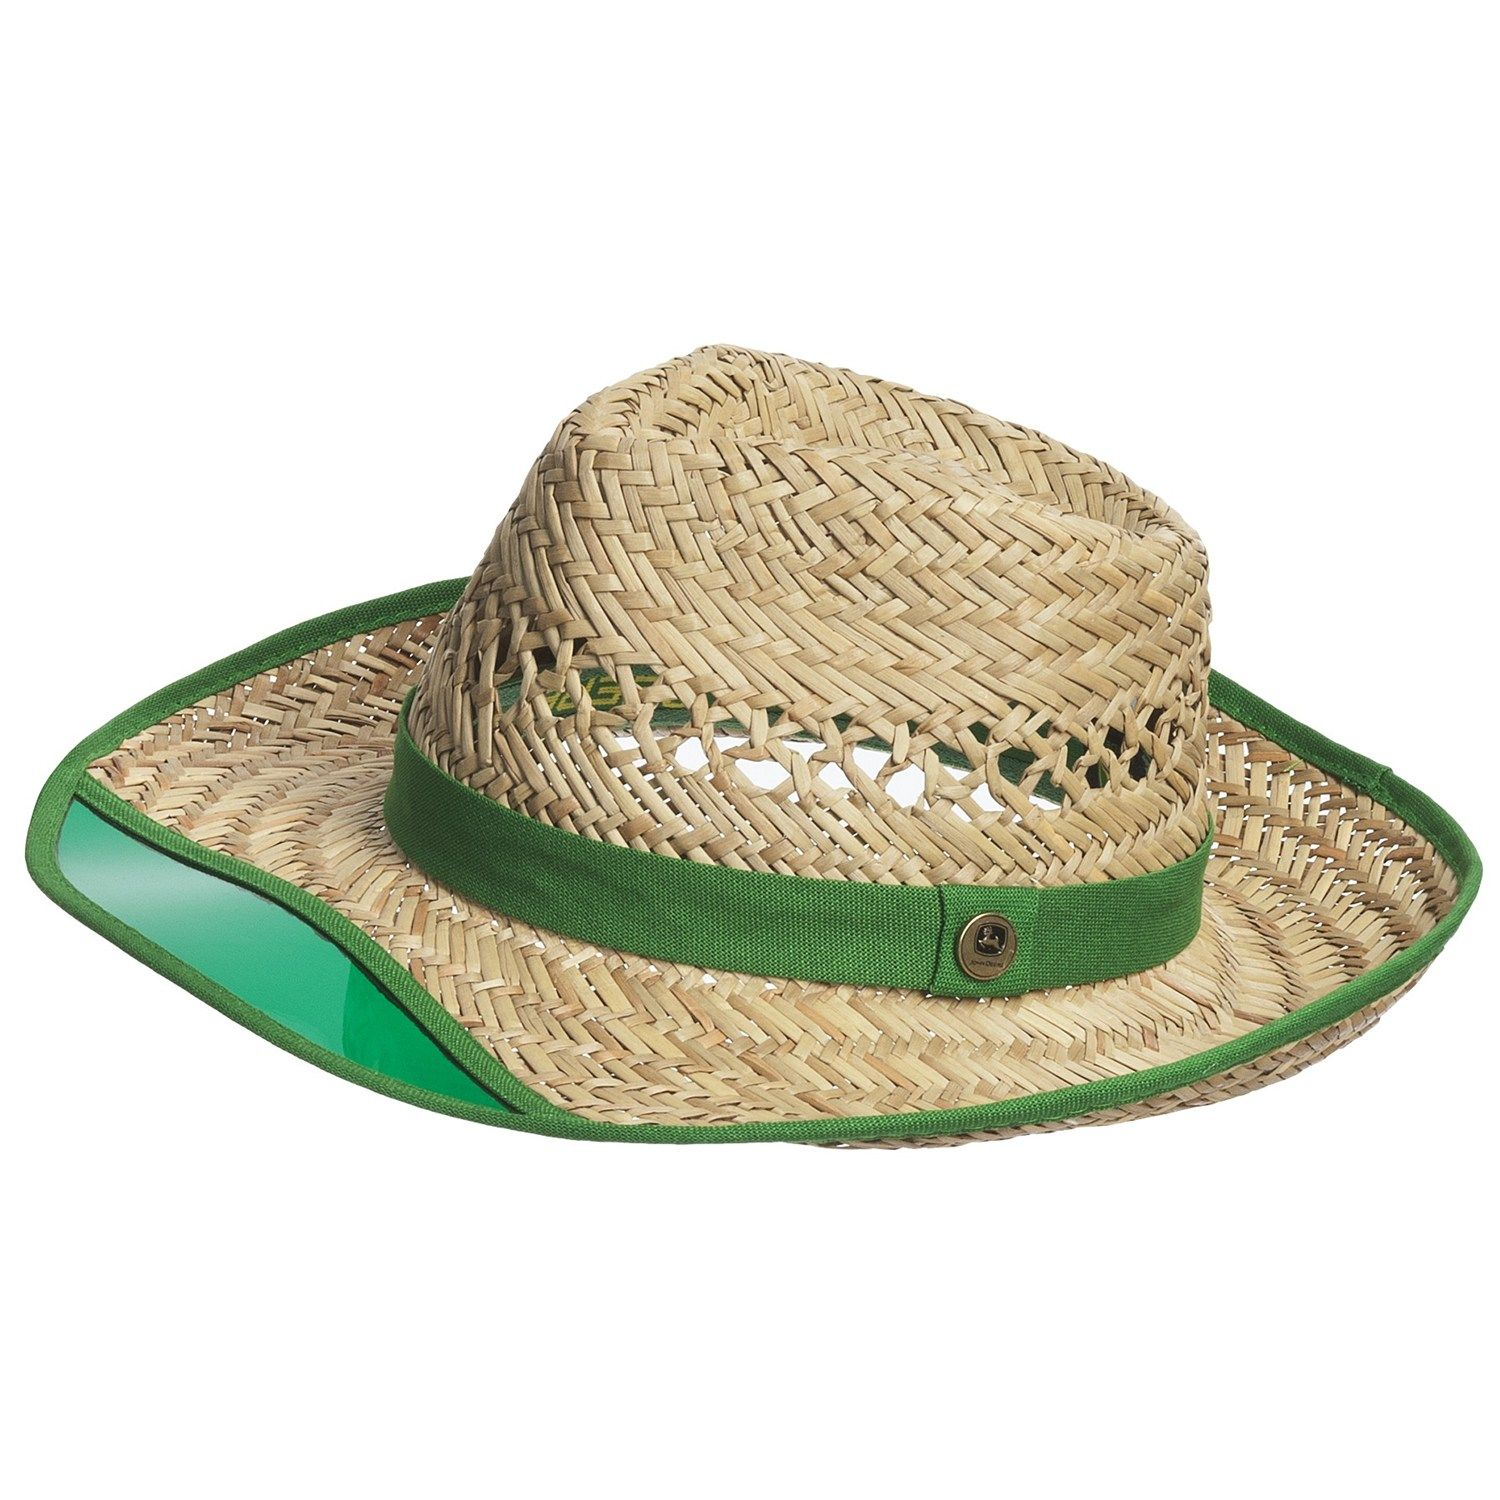 597b3a76cd4 The first time I ve seen a straw hat like this. John Deere Sun Visor Hat - Rush  Straw